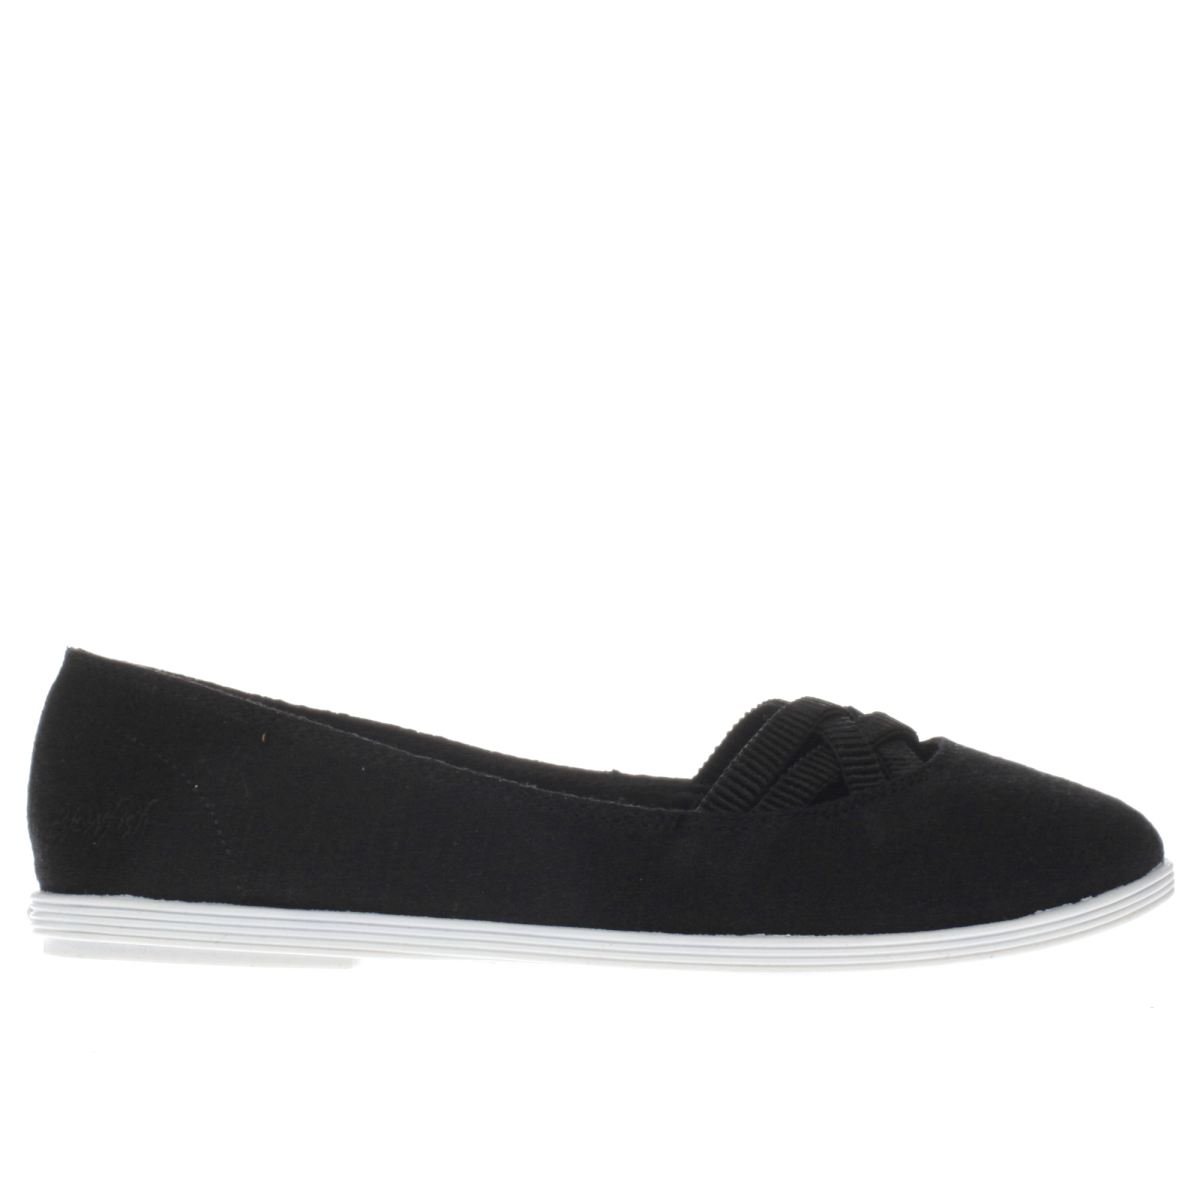 blowfish black grover jersey flat shoes